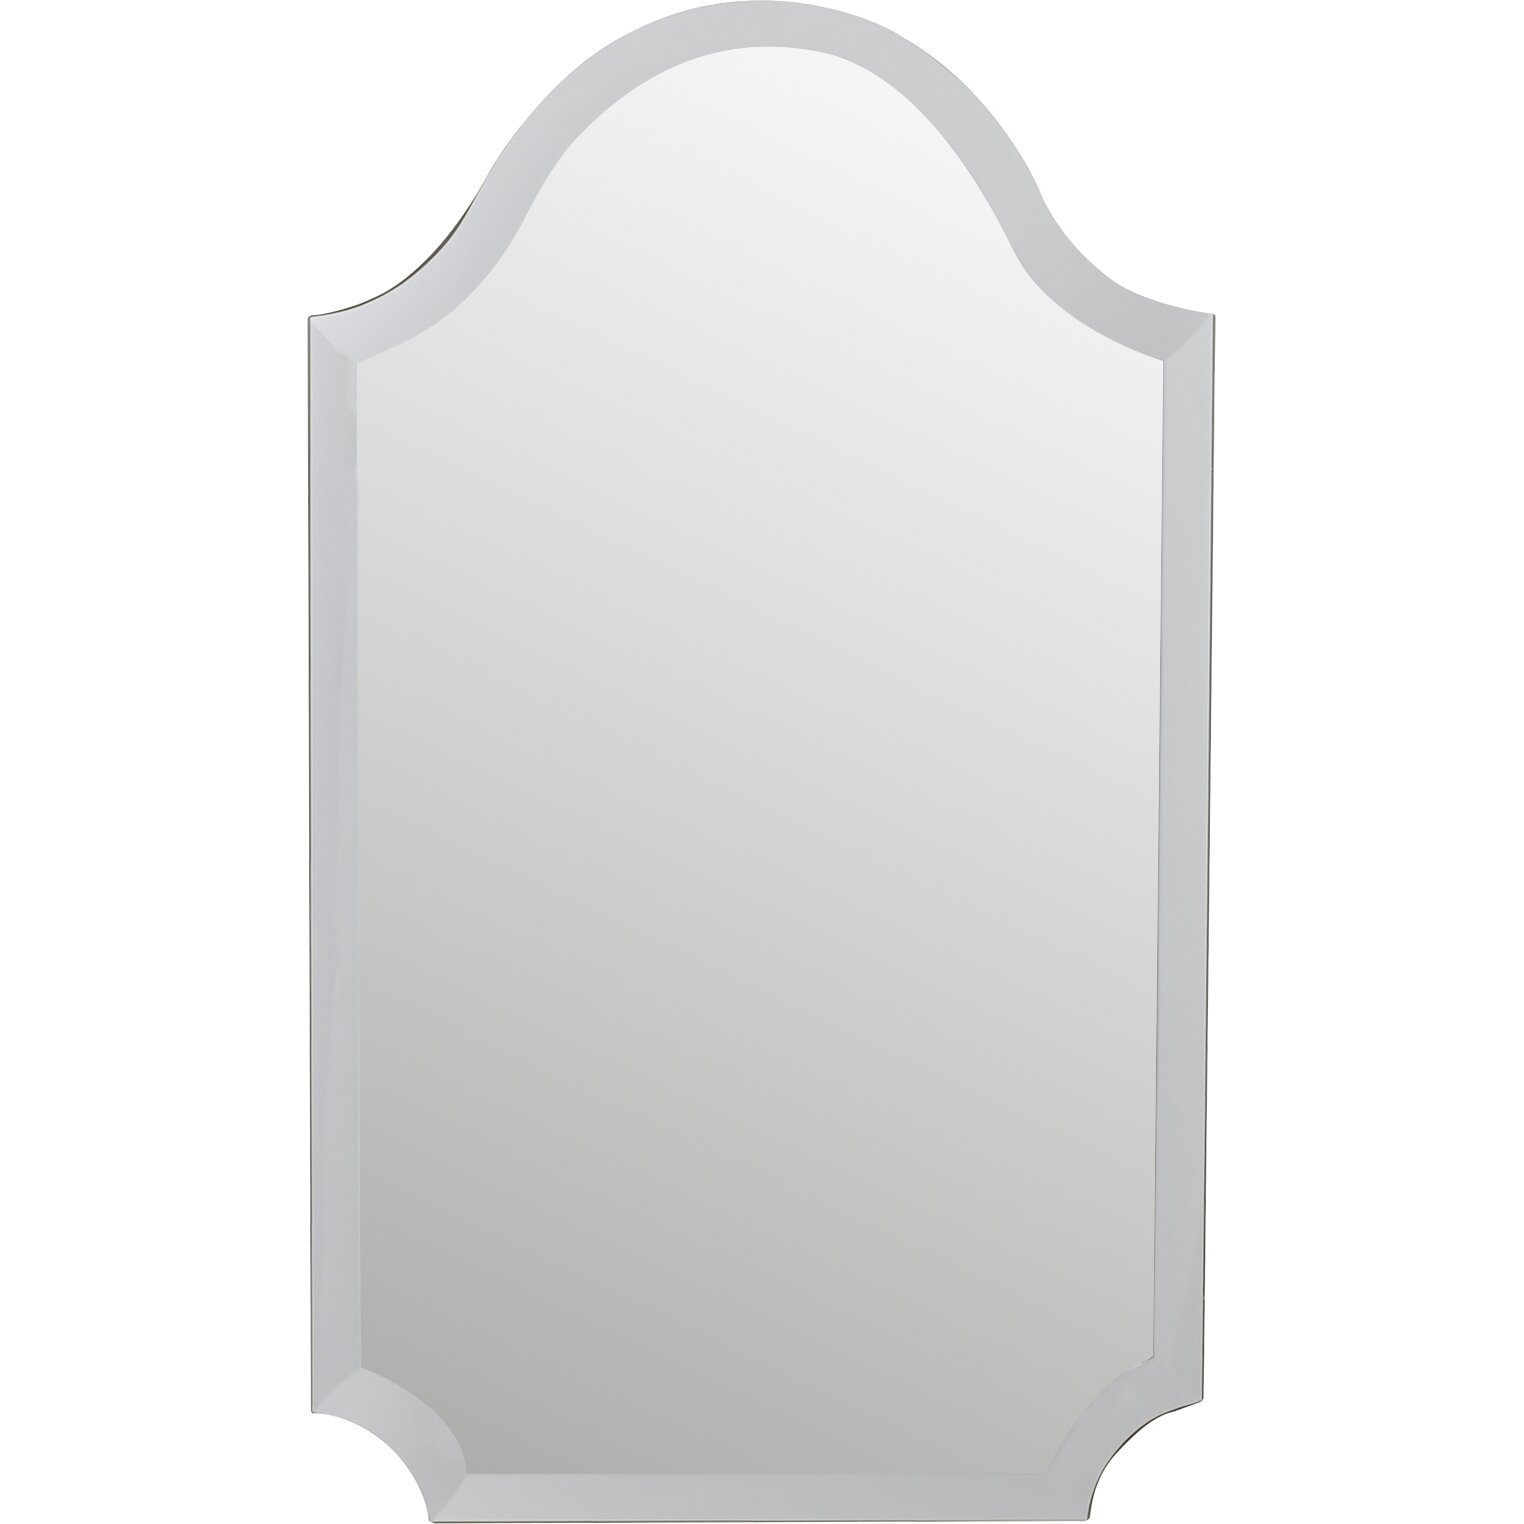 Mercer41 tall arched scalloped wall mirror reviews wayfair for Tall wall mirrors